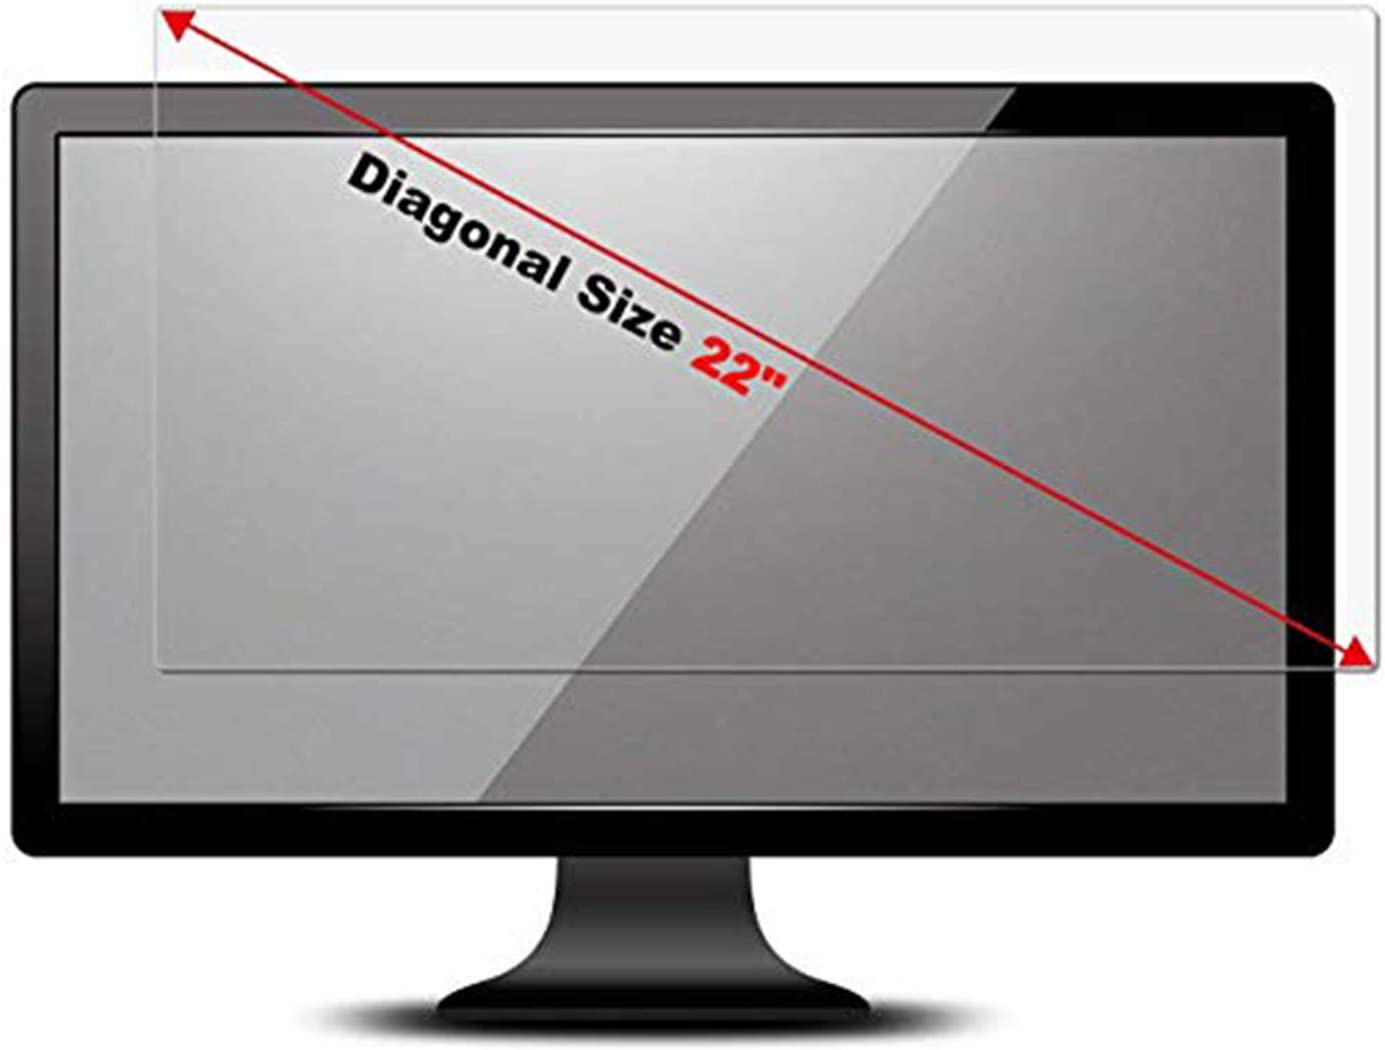 22 Inch Anti Glare Monitor Screen Protector Computer Widescreen Desktop with 16:10 Aspect Ratio Compatible with 22